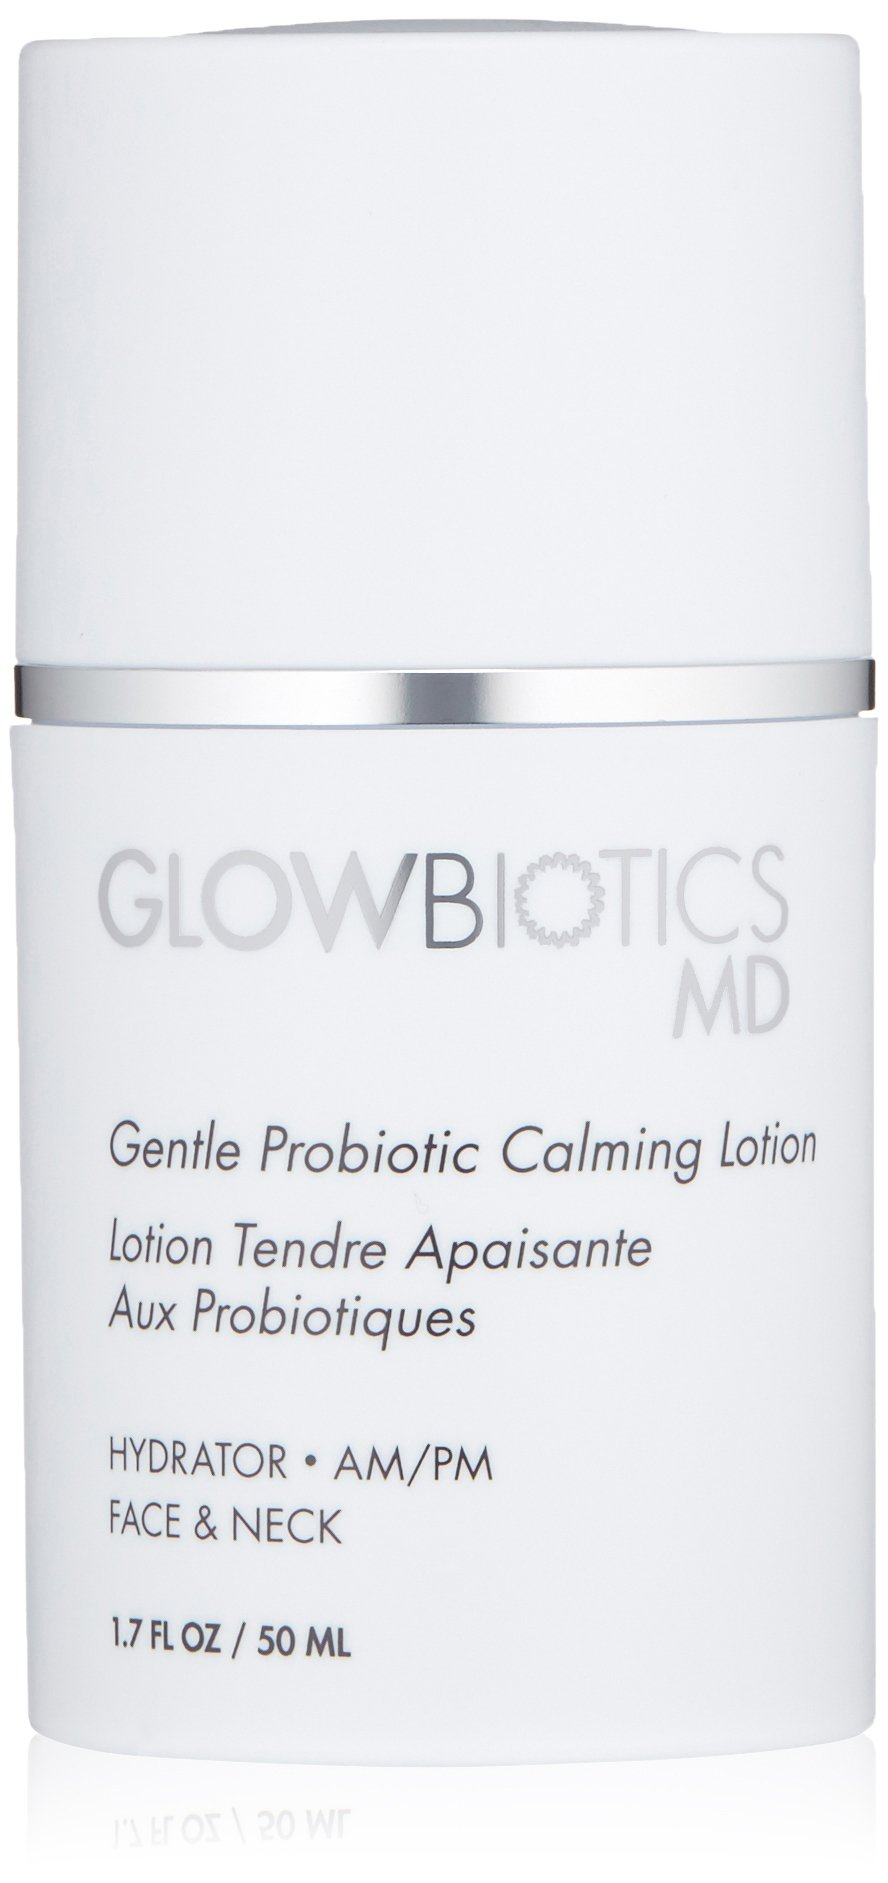 Glowbioitics MD Gentle Probiotic Antioxidant Face Calming Lotion to Nourish and Hydrate Sensitive Skin